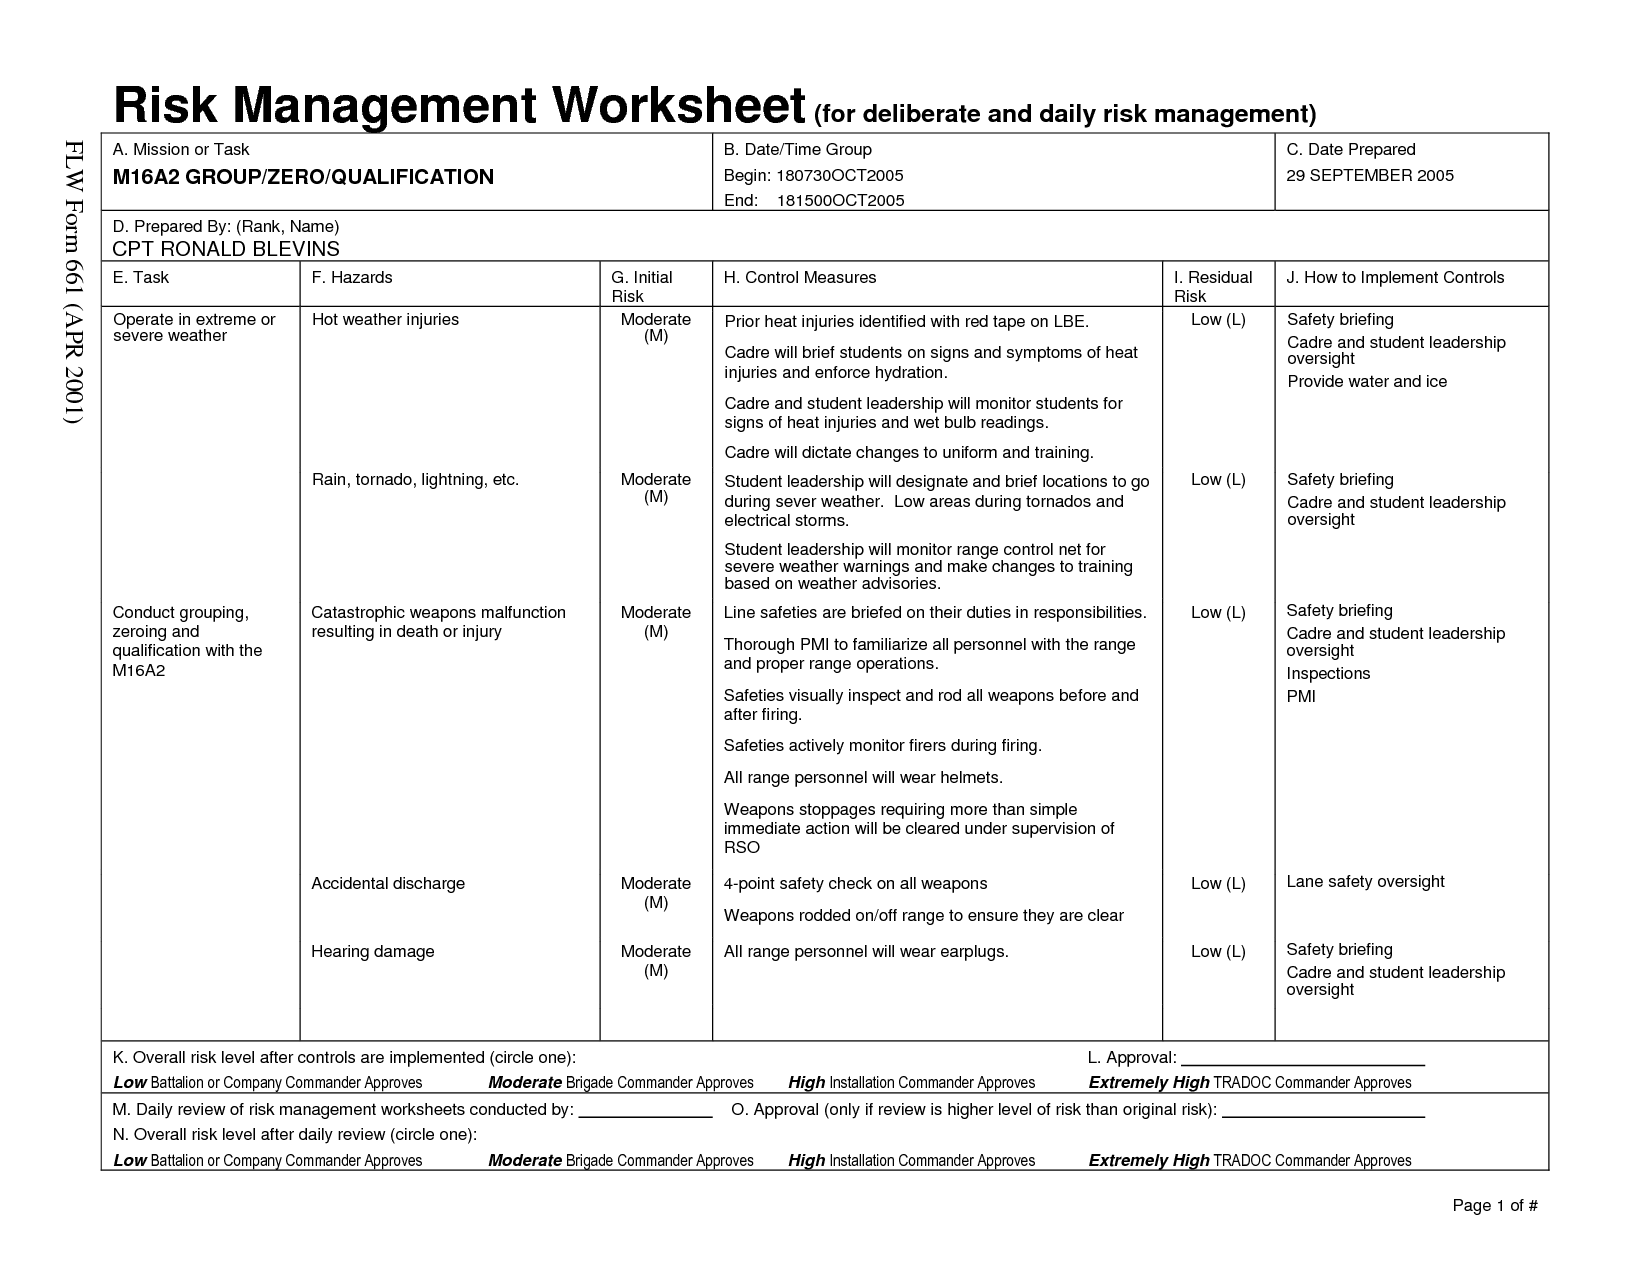 Crm worksheet fillable